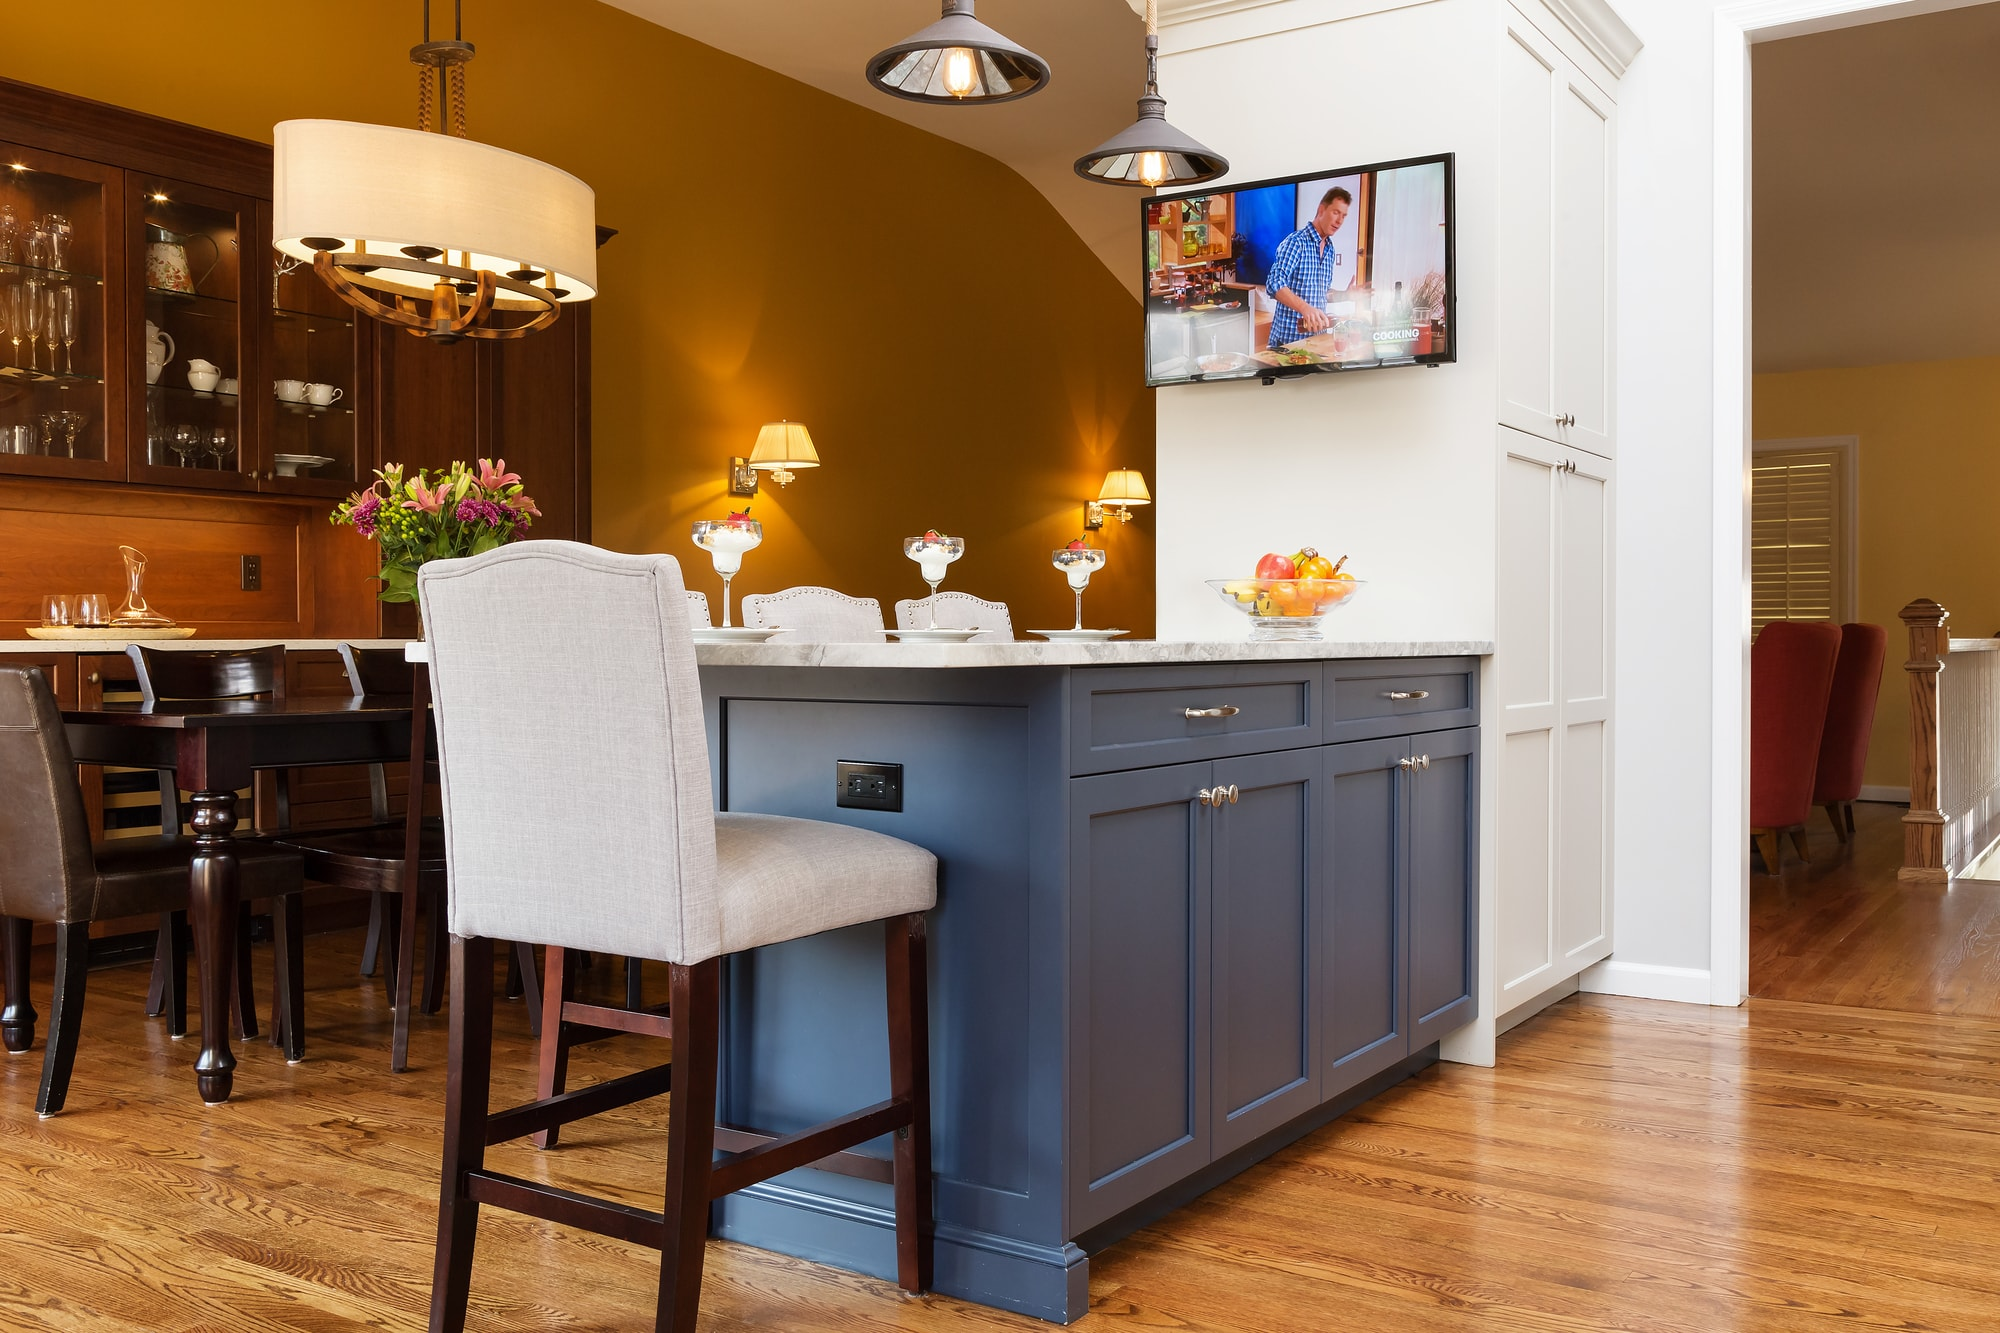 Transitional style kitchen with center island and dining area